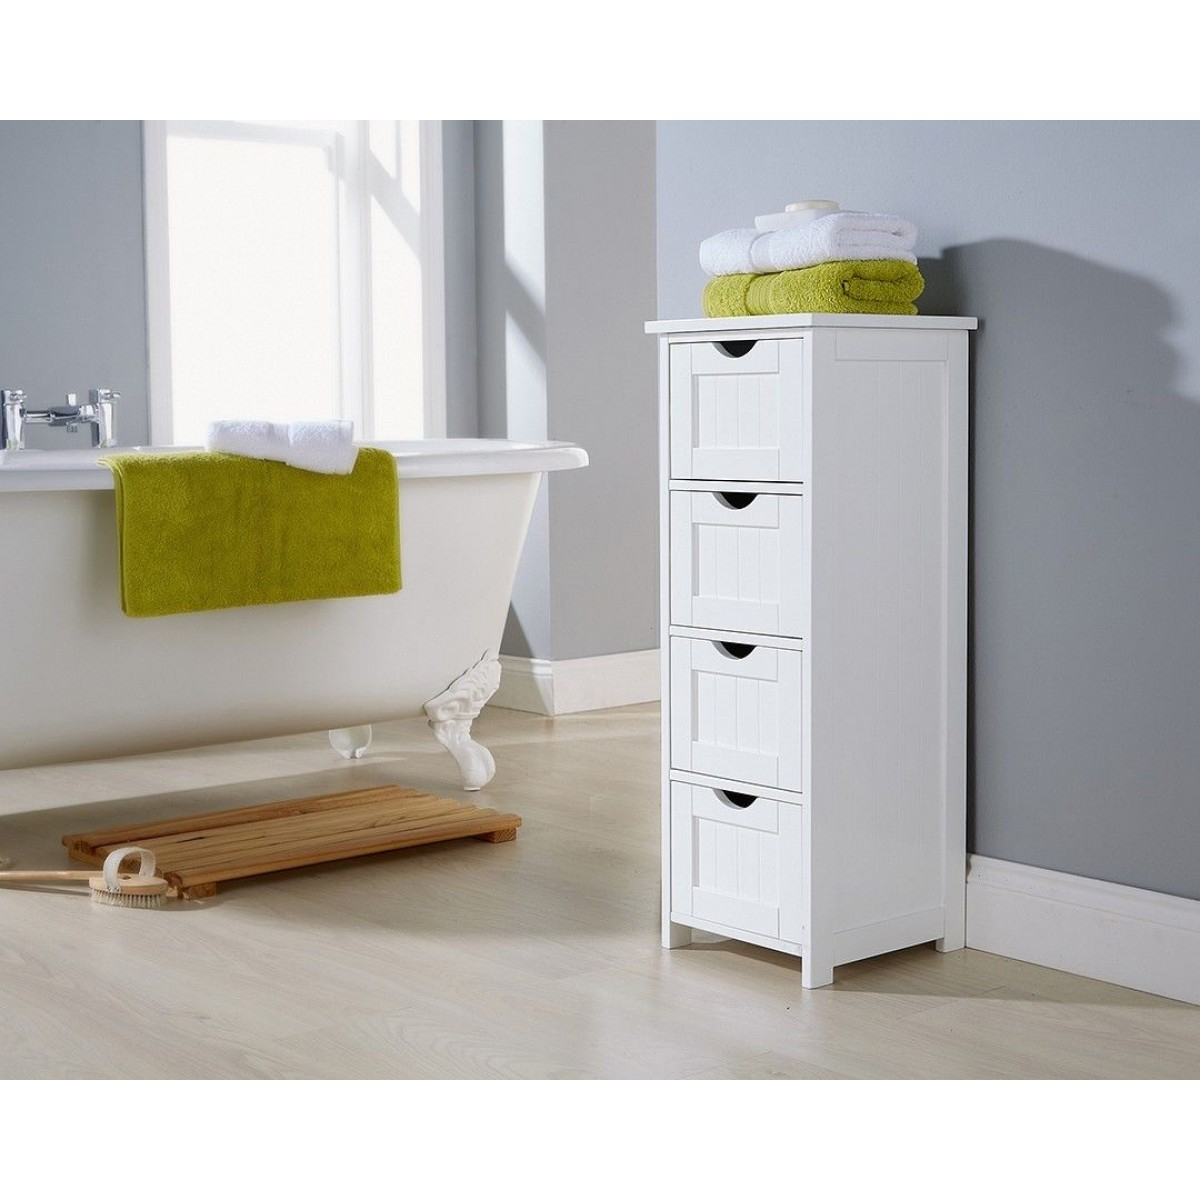 White 4 Drawer Standing Bathroom Storage Rack intended for size 1200 X 1200